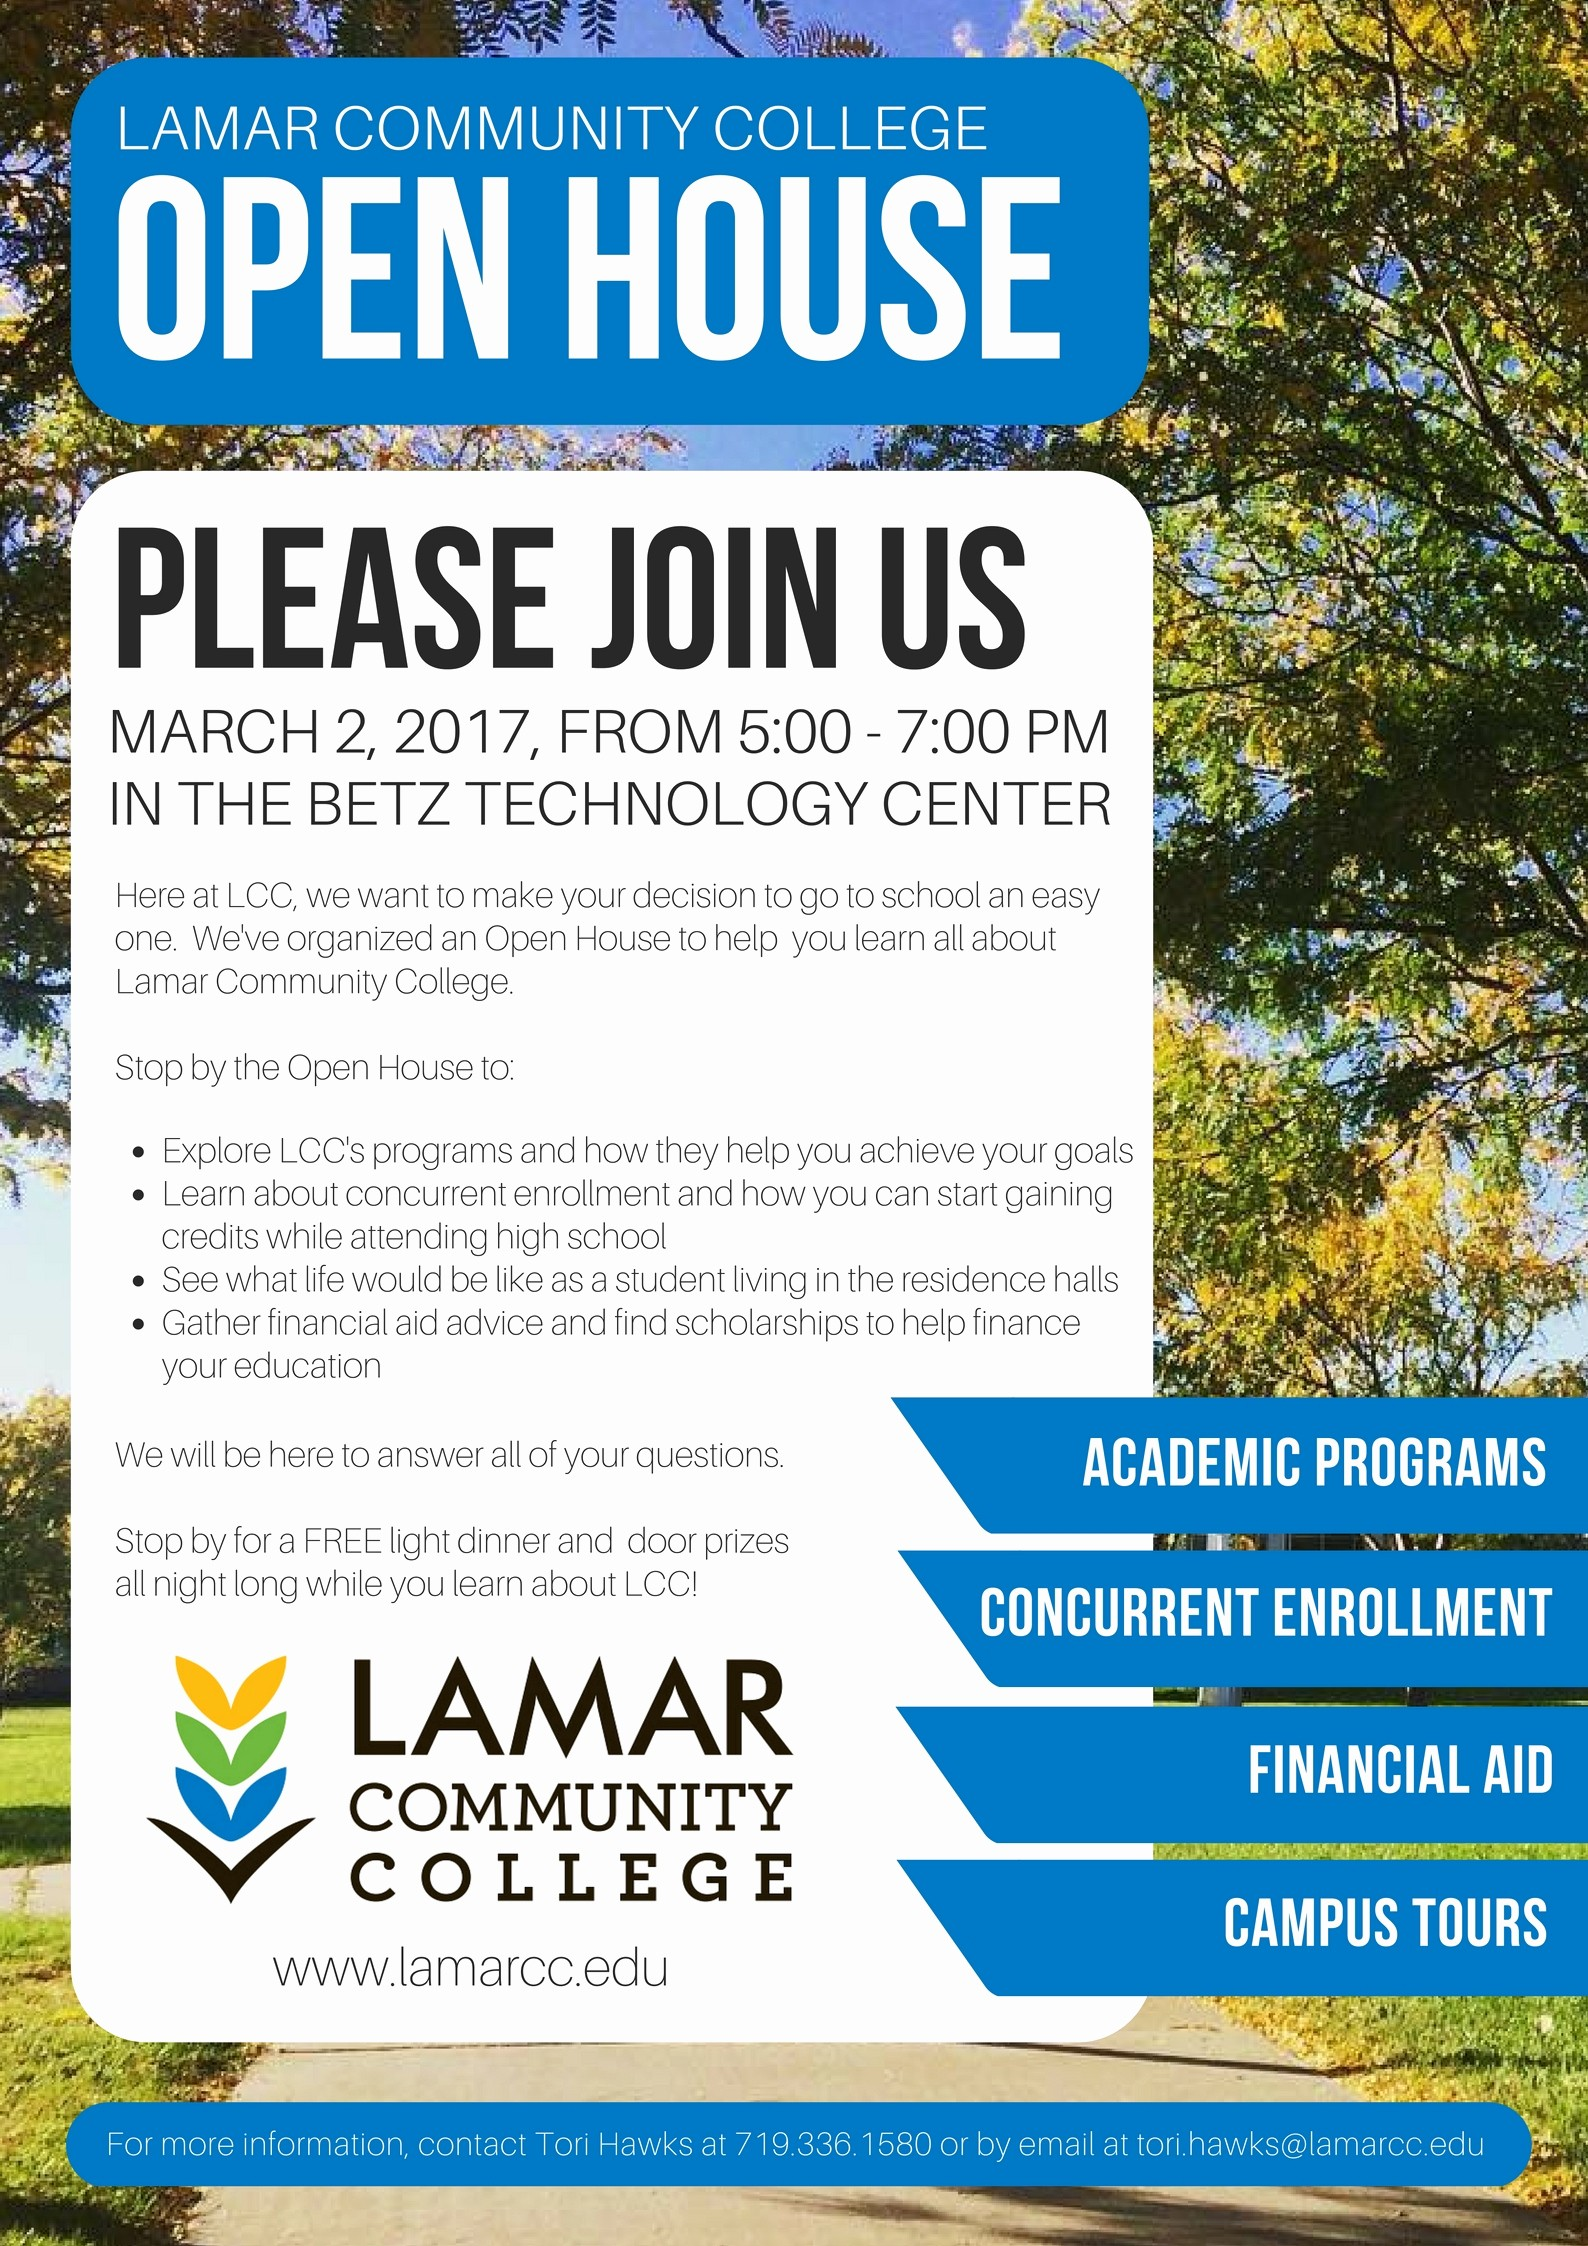 Open House Flyers for School Best Of Lcc Open House Set for March 2 Lamar Cc